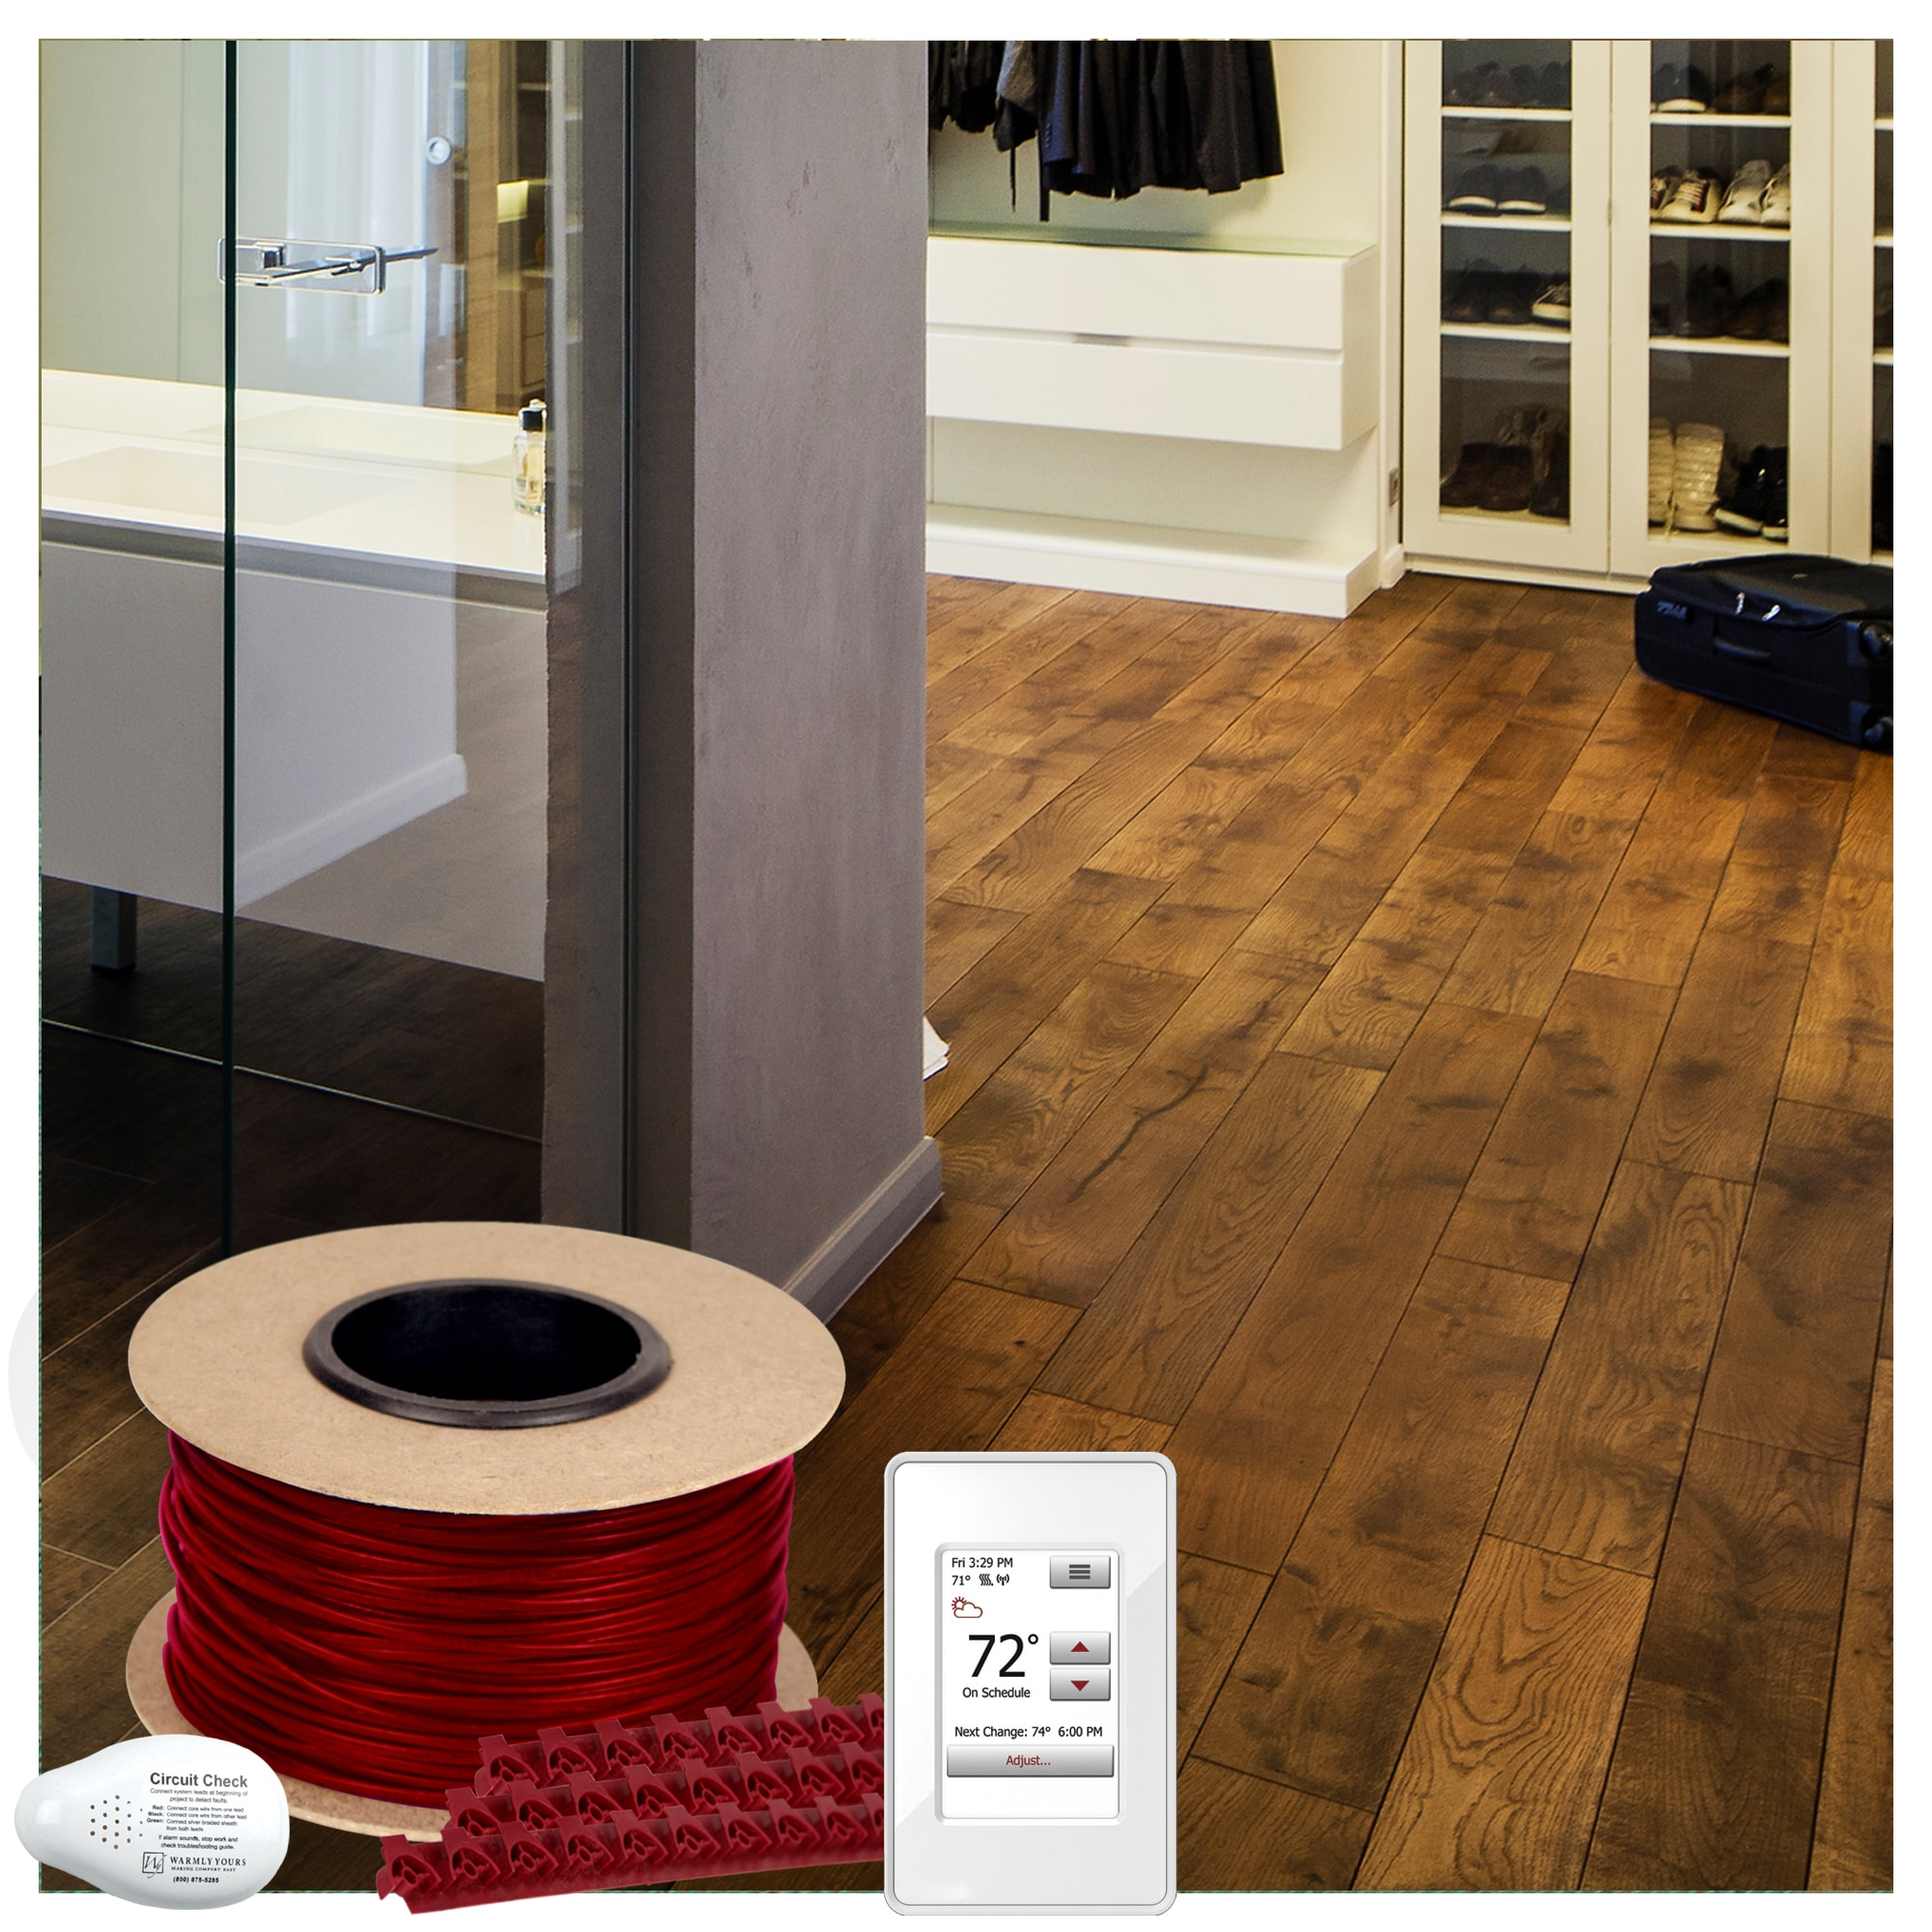 Warmlyyours 92 Sq Ft 240v Electric Floor Heating Cable Kit